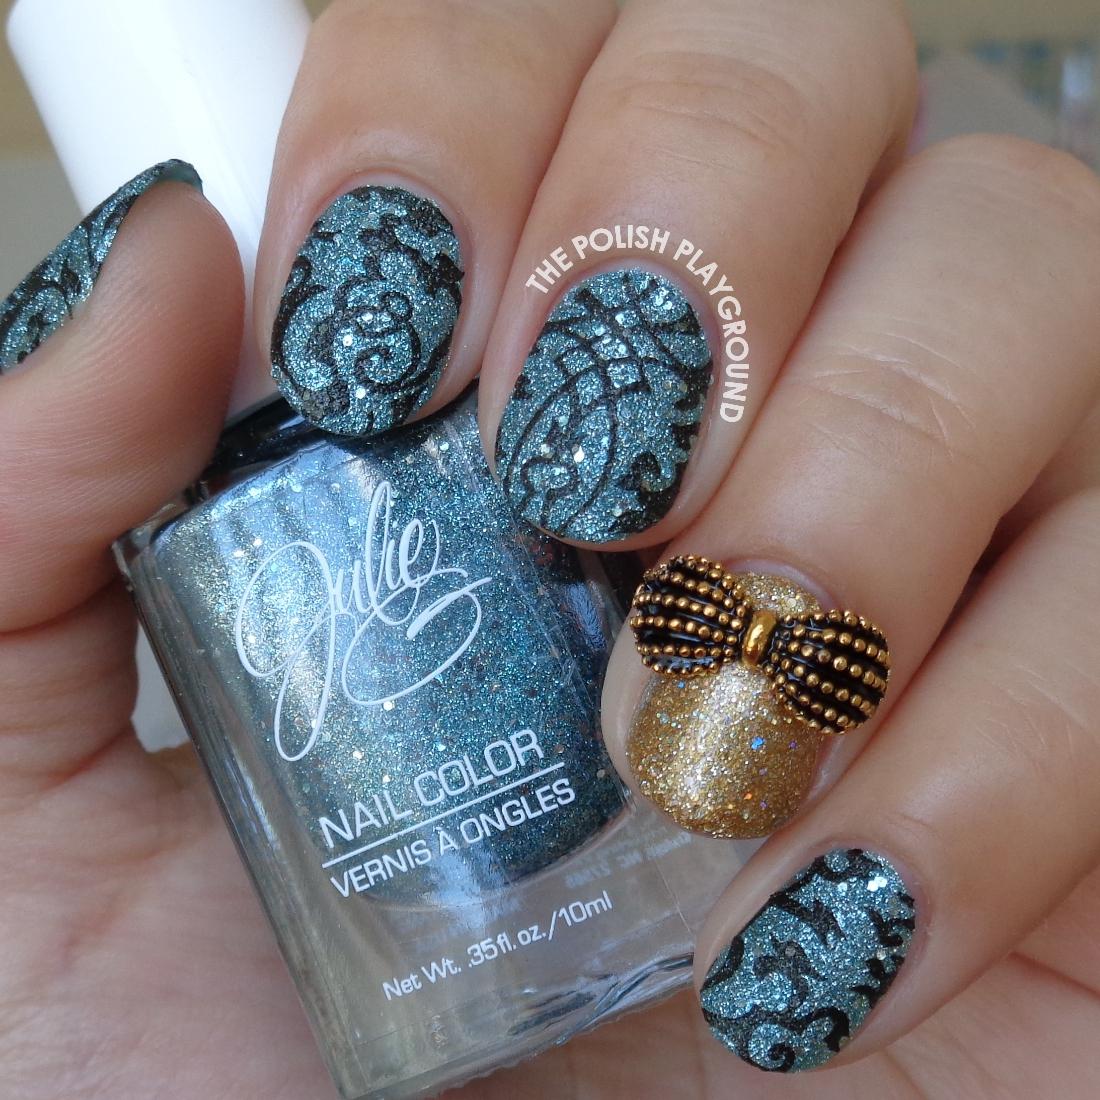 The Polish Playground: Blue Texture & Black Stamping with Gold Accent